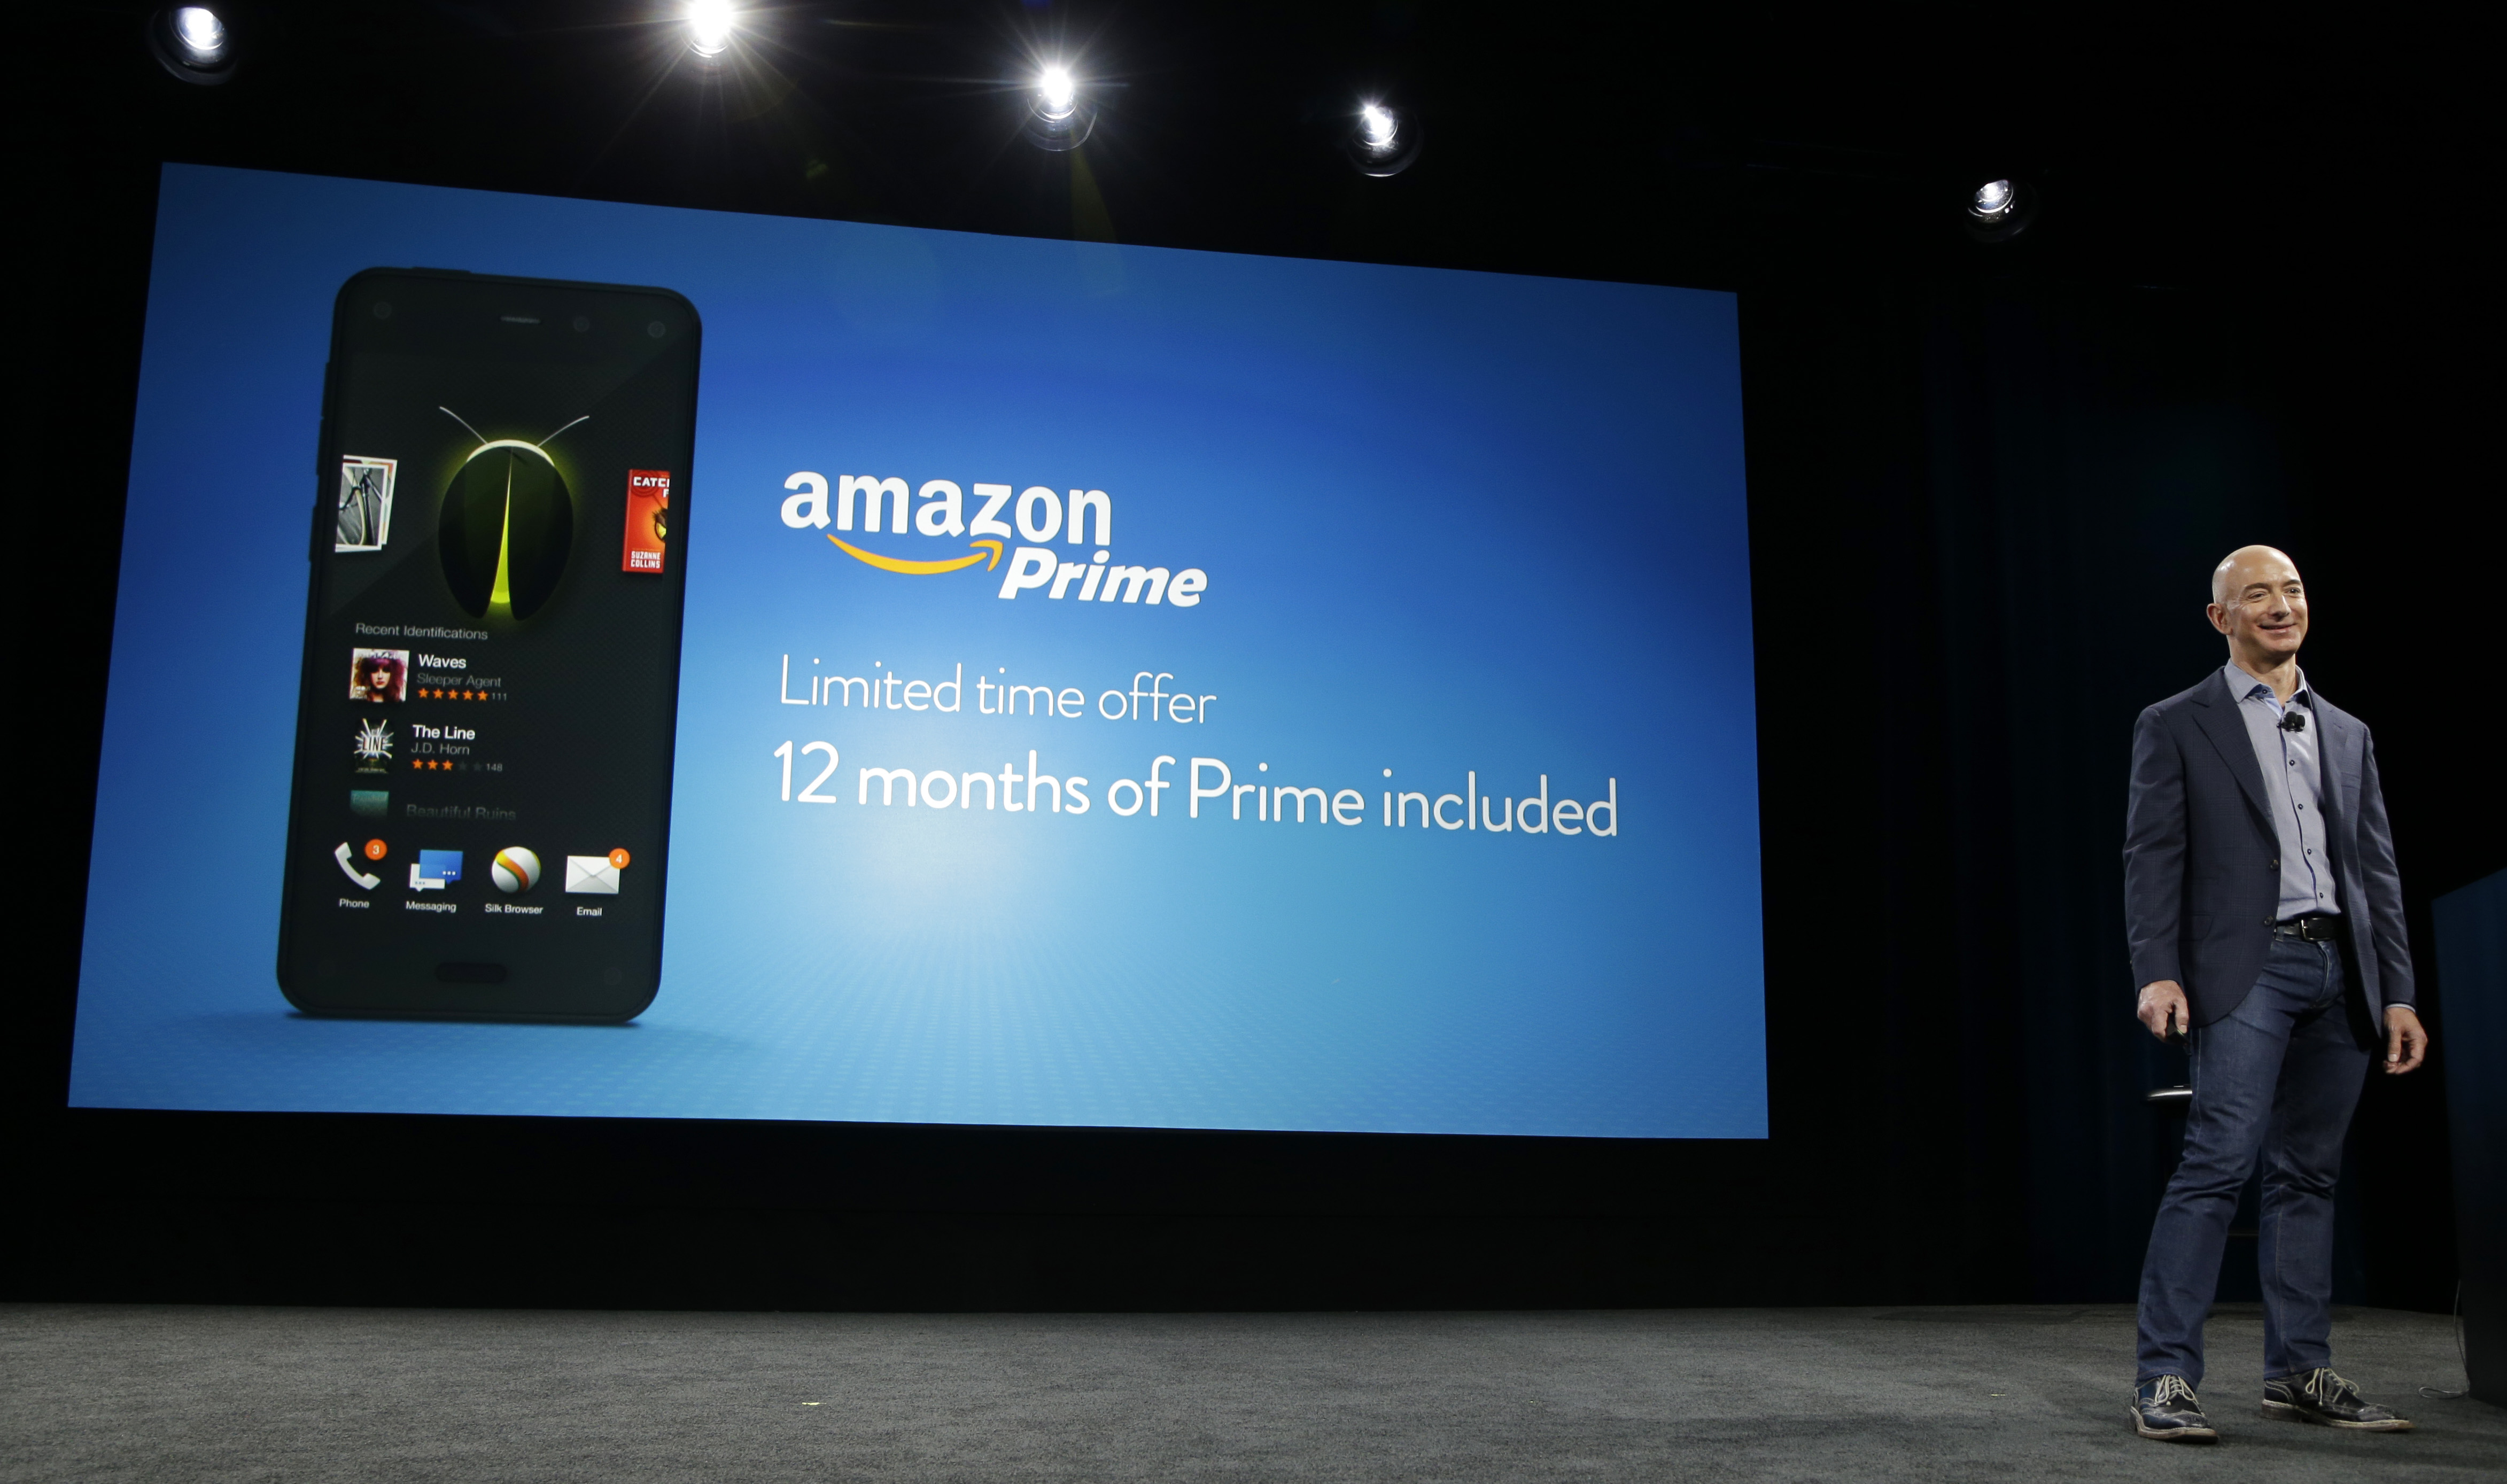 Amazon Prime titles available for download